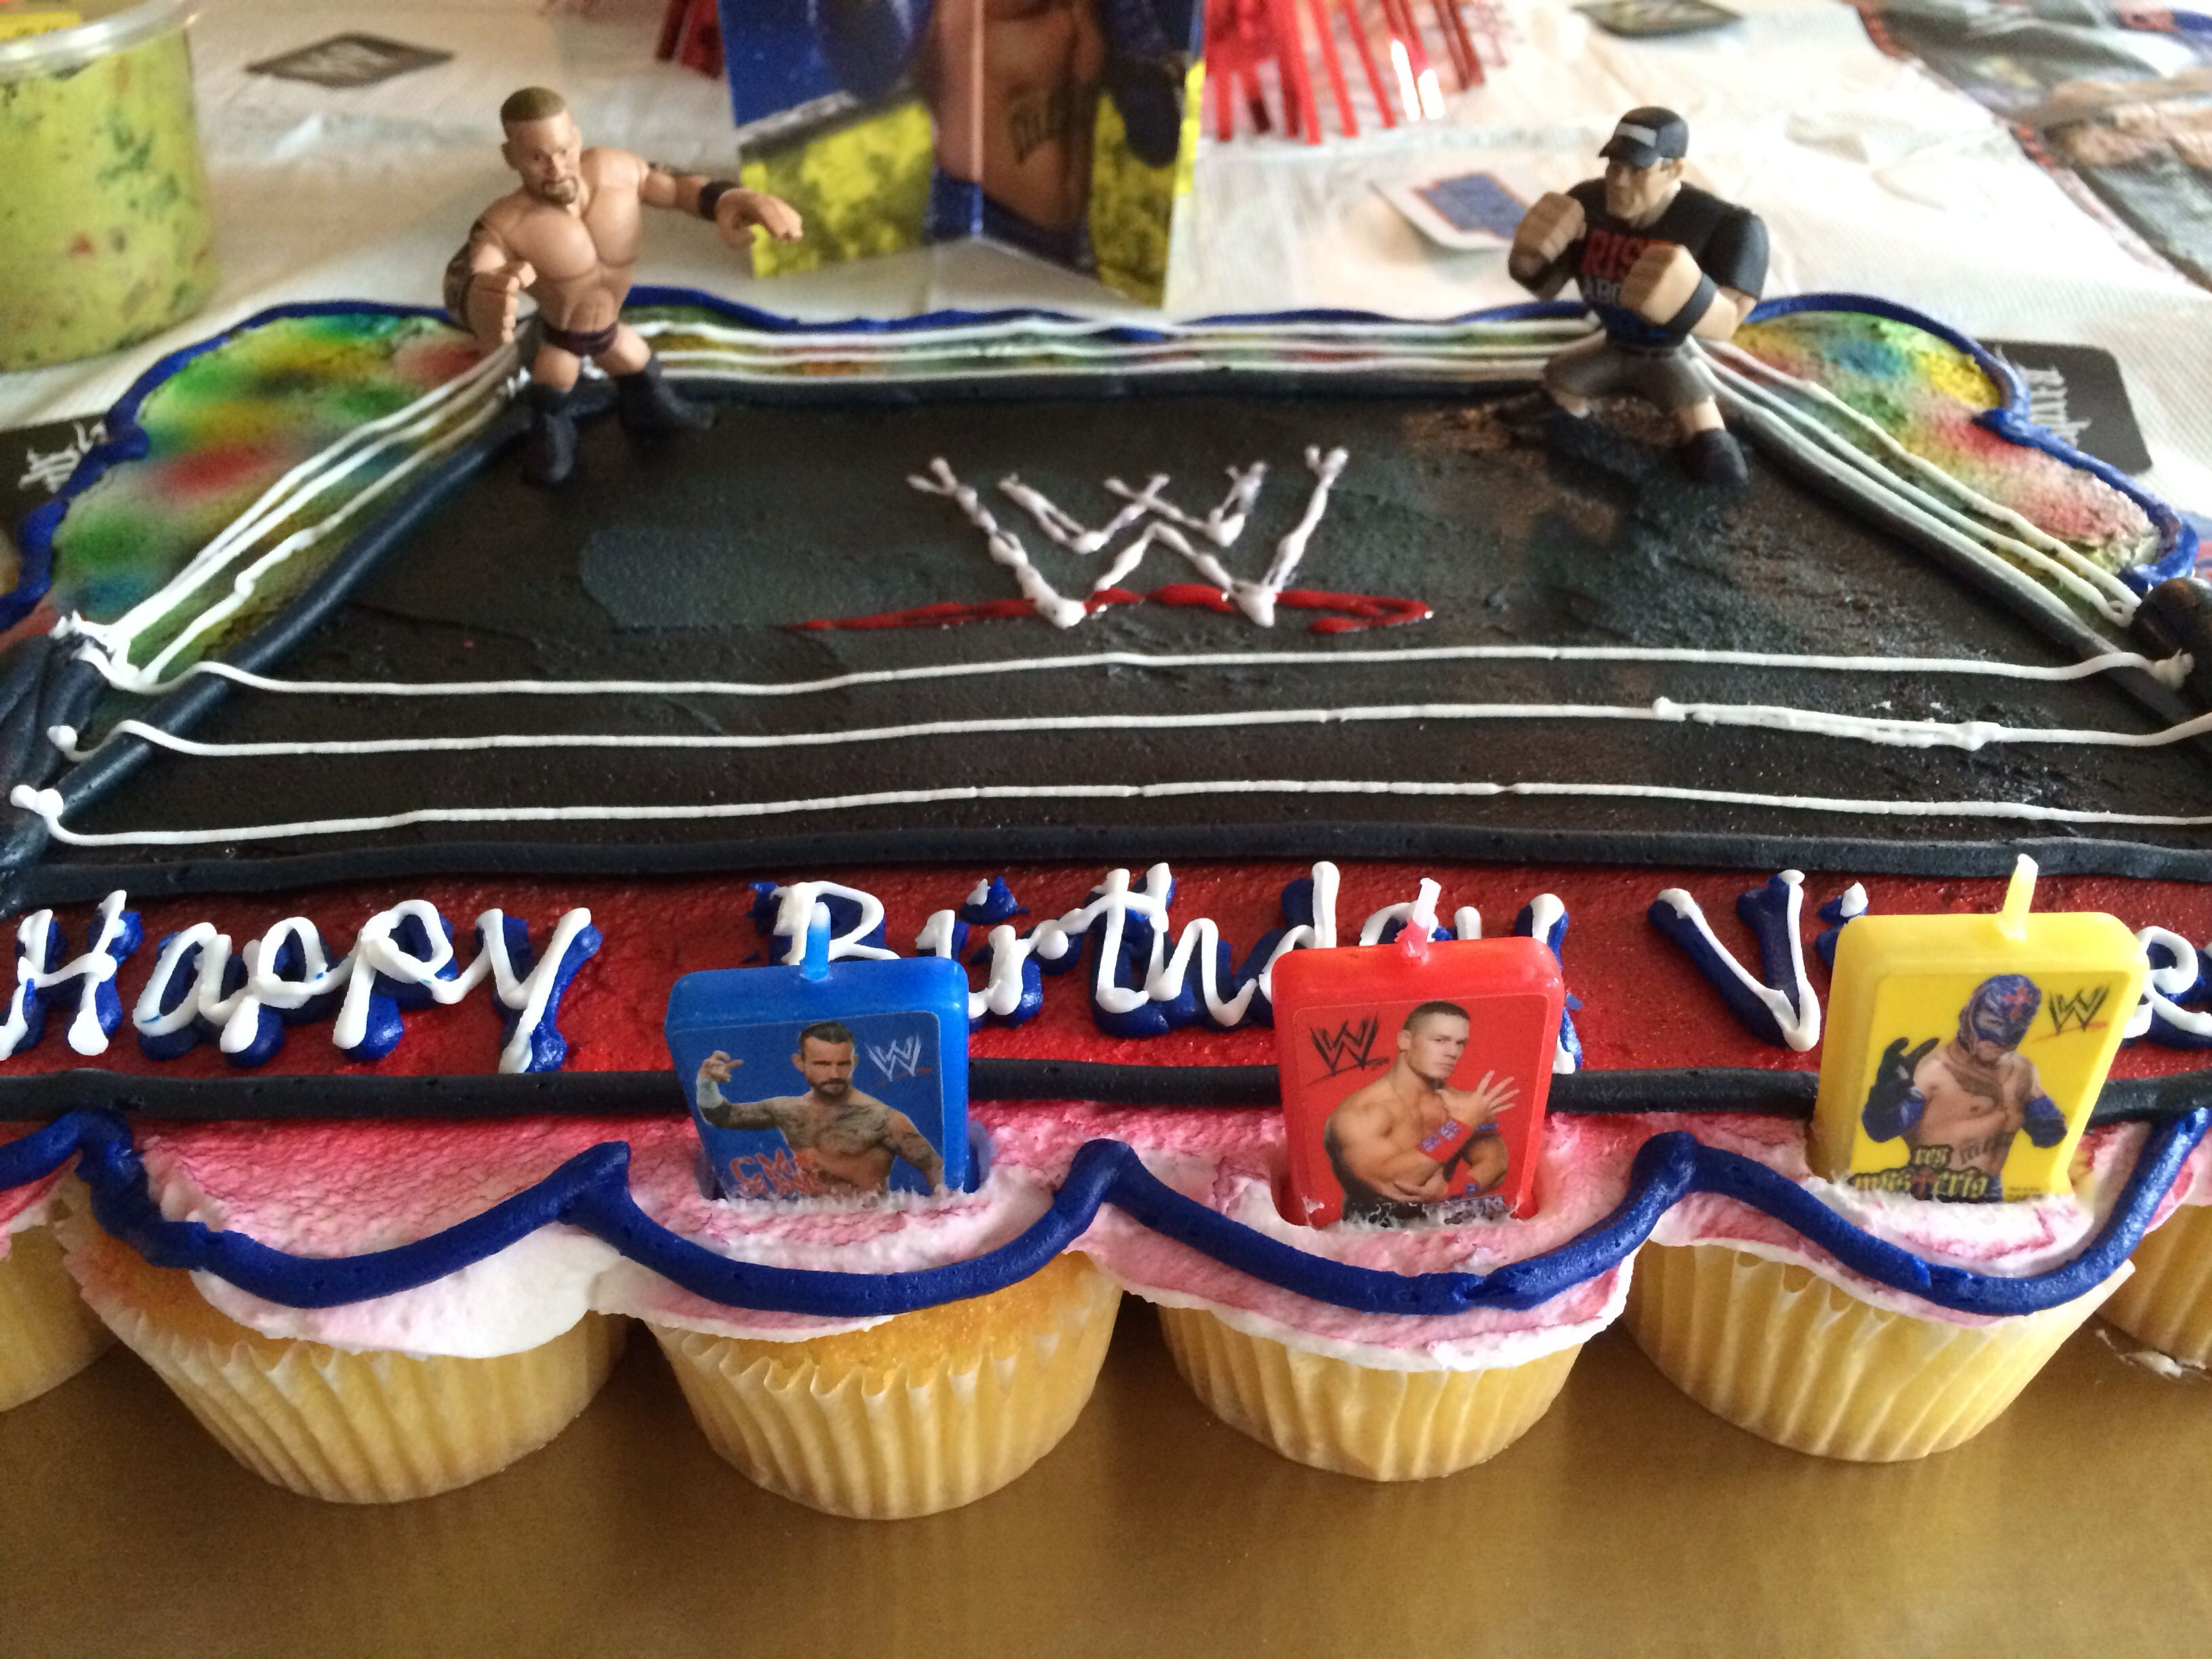 Kroger Cupcake Cake Hand Printed WWE Sign Purchased Figures For Ring Turned Out Pretty Cool And Son Loved It